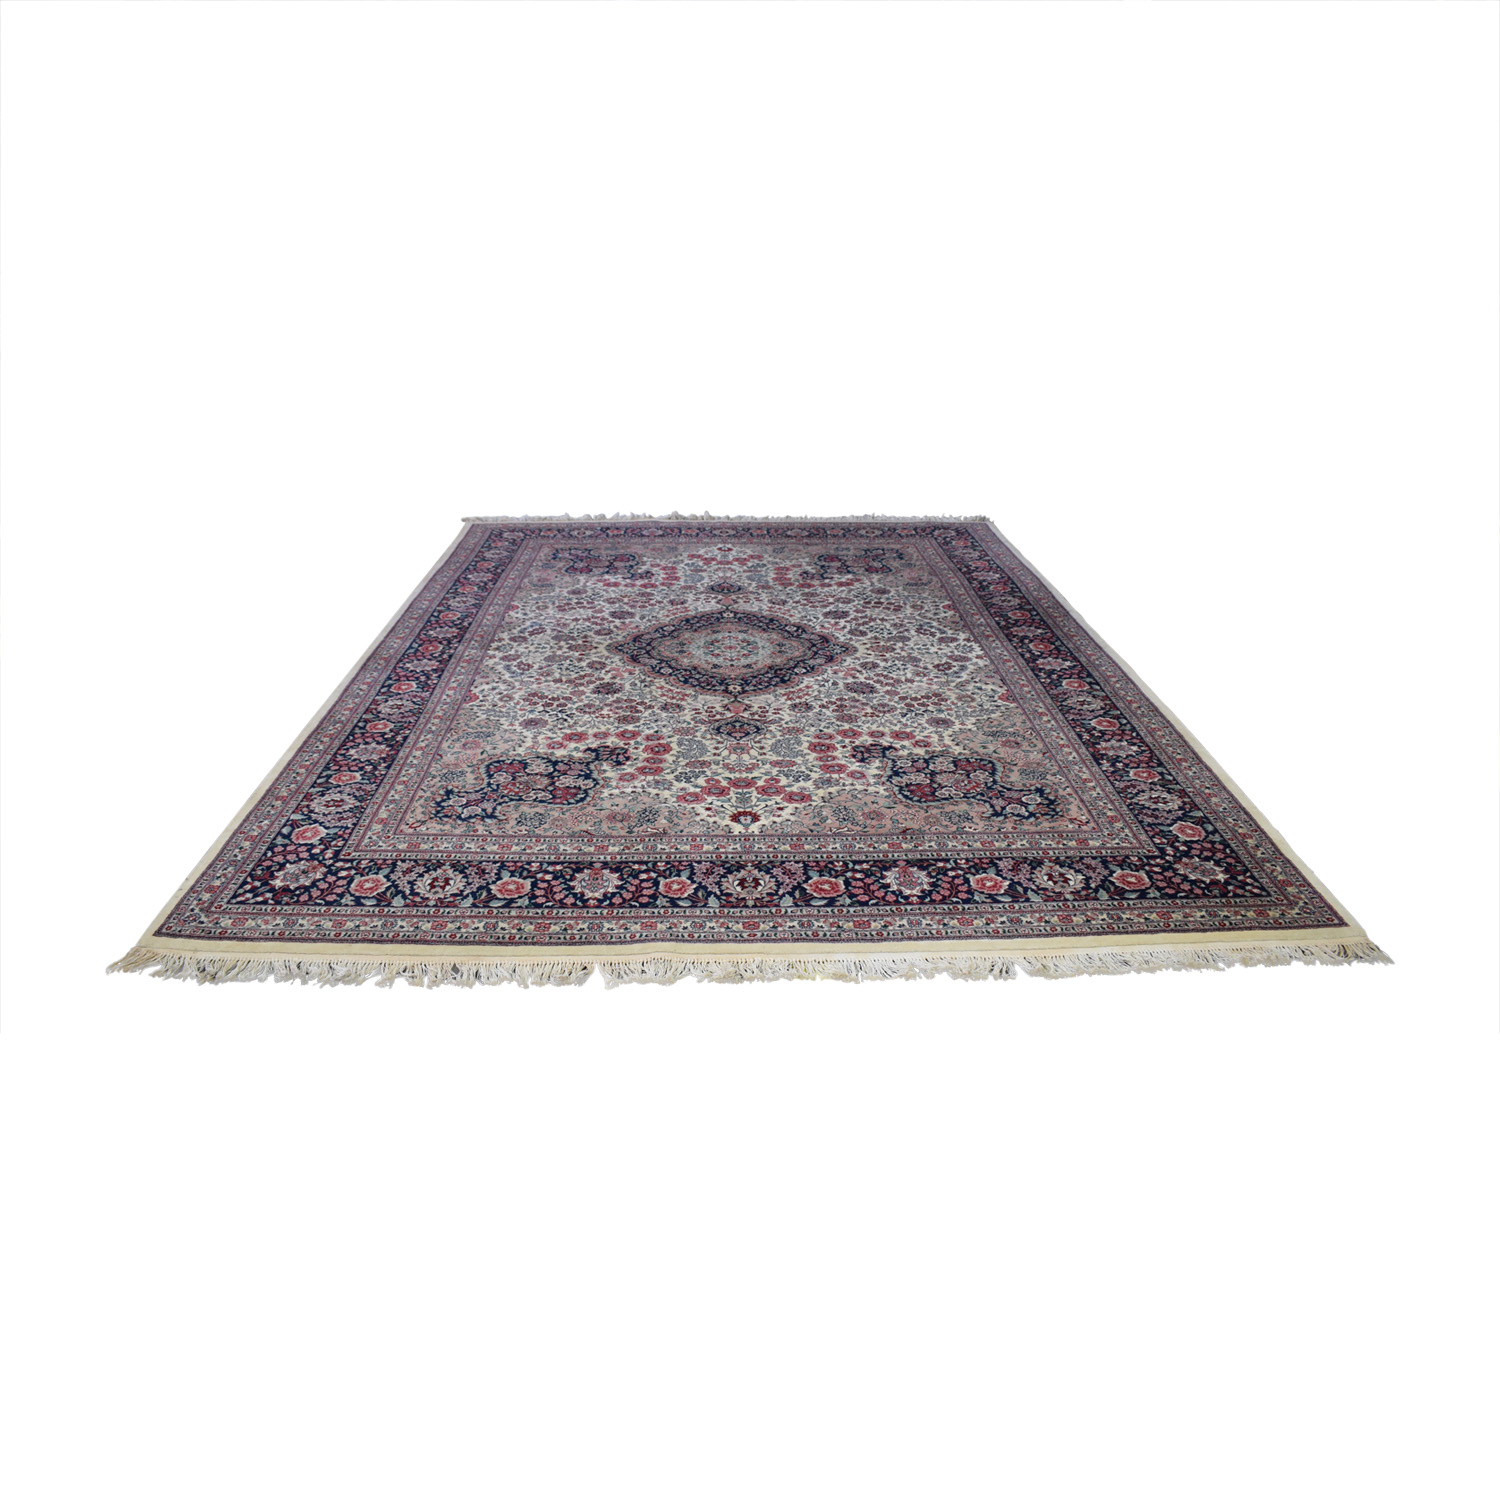 buy ABC Carpet & Home Area Rug ABC Carpet & Home